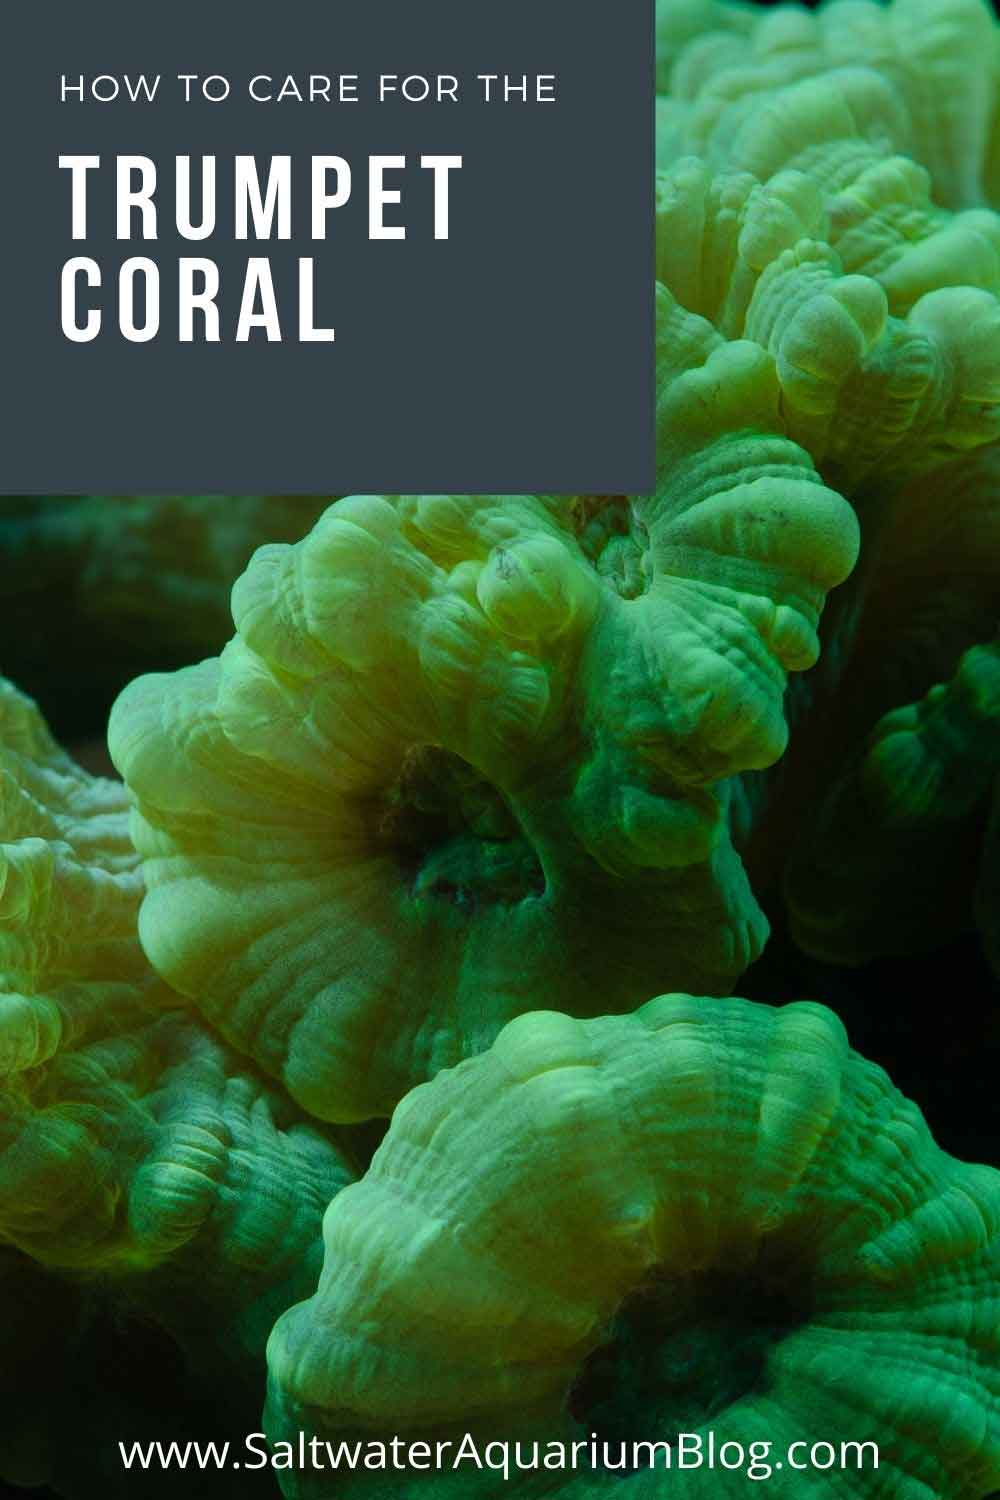 trumpet coral care guide